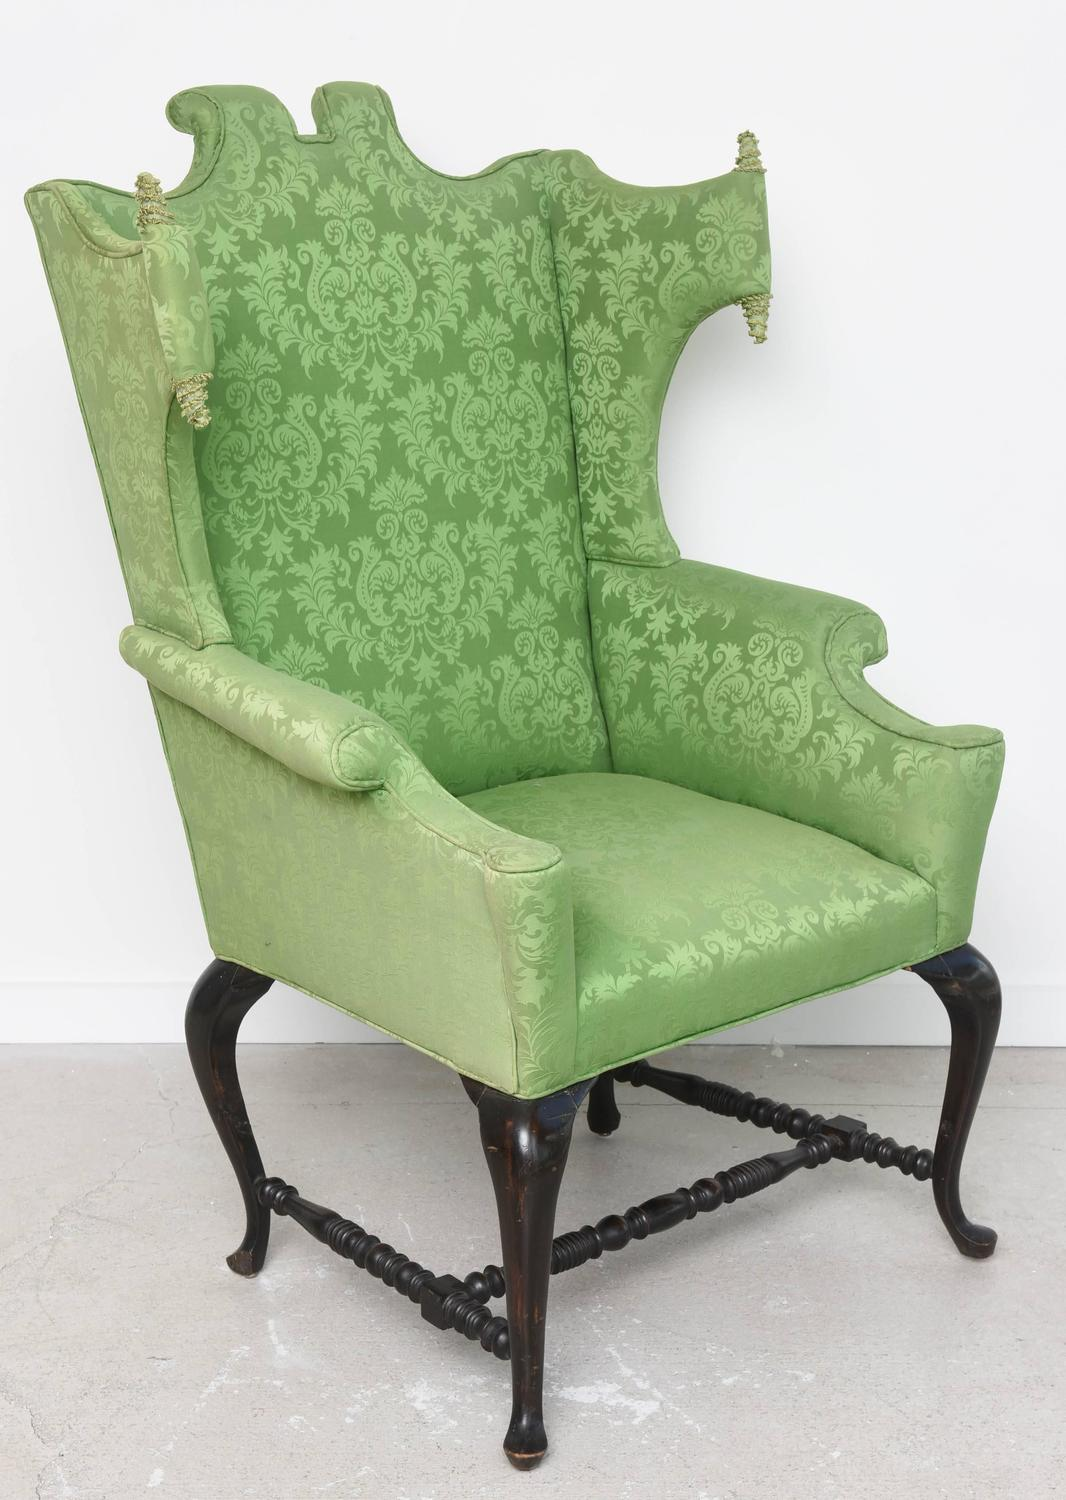 queen anne style chairs office chair home whimsical at 1stdibs